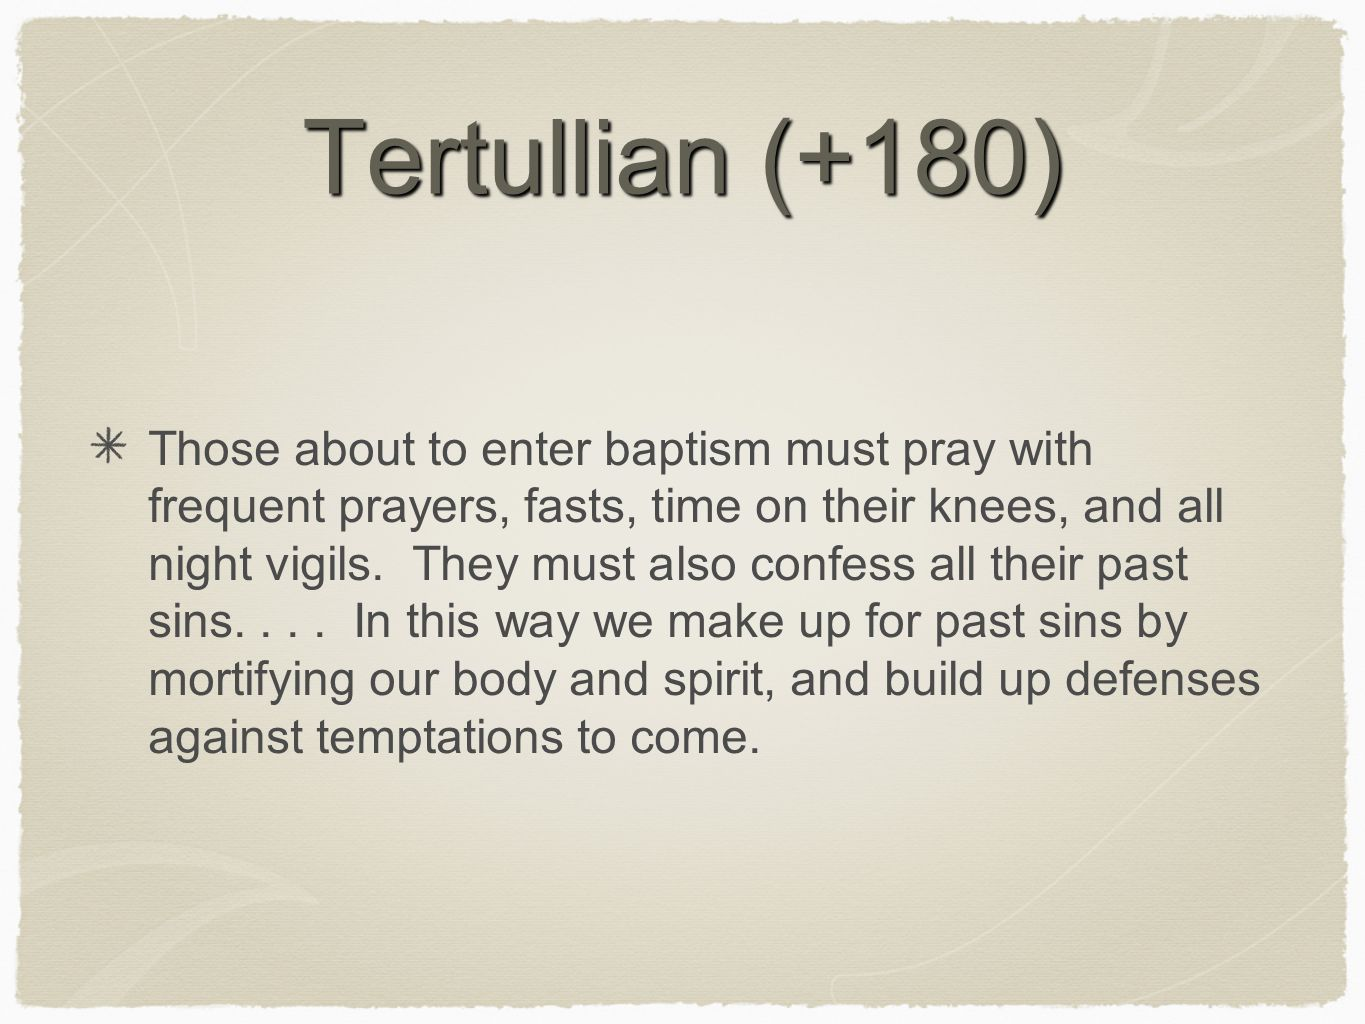 Tertullian (+180) Those about to enter baptism must pray with frequent prayers, fasts, time on their knees, and all night vigils. They must also confe